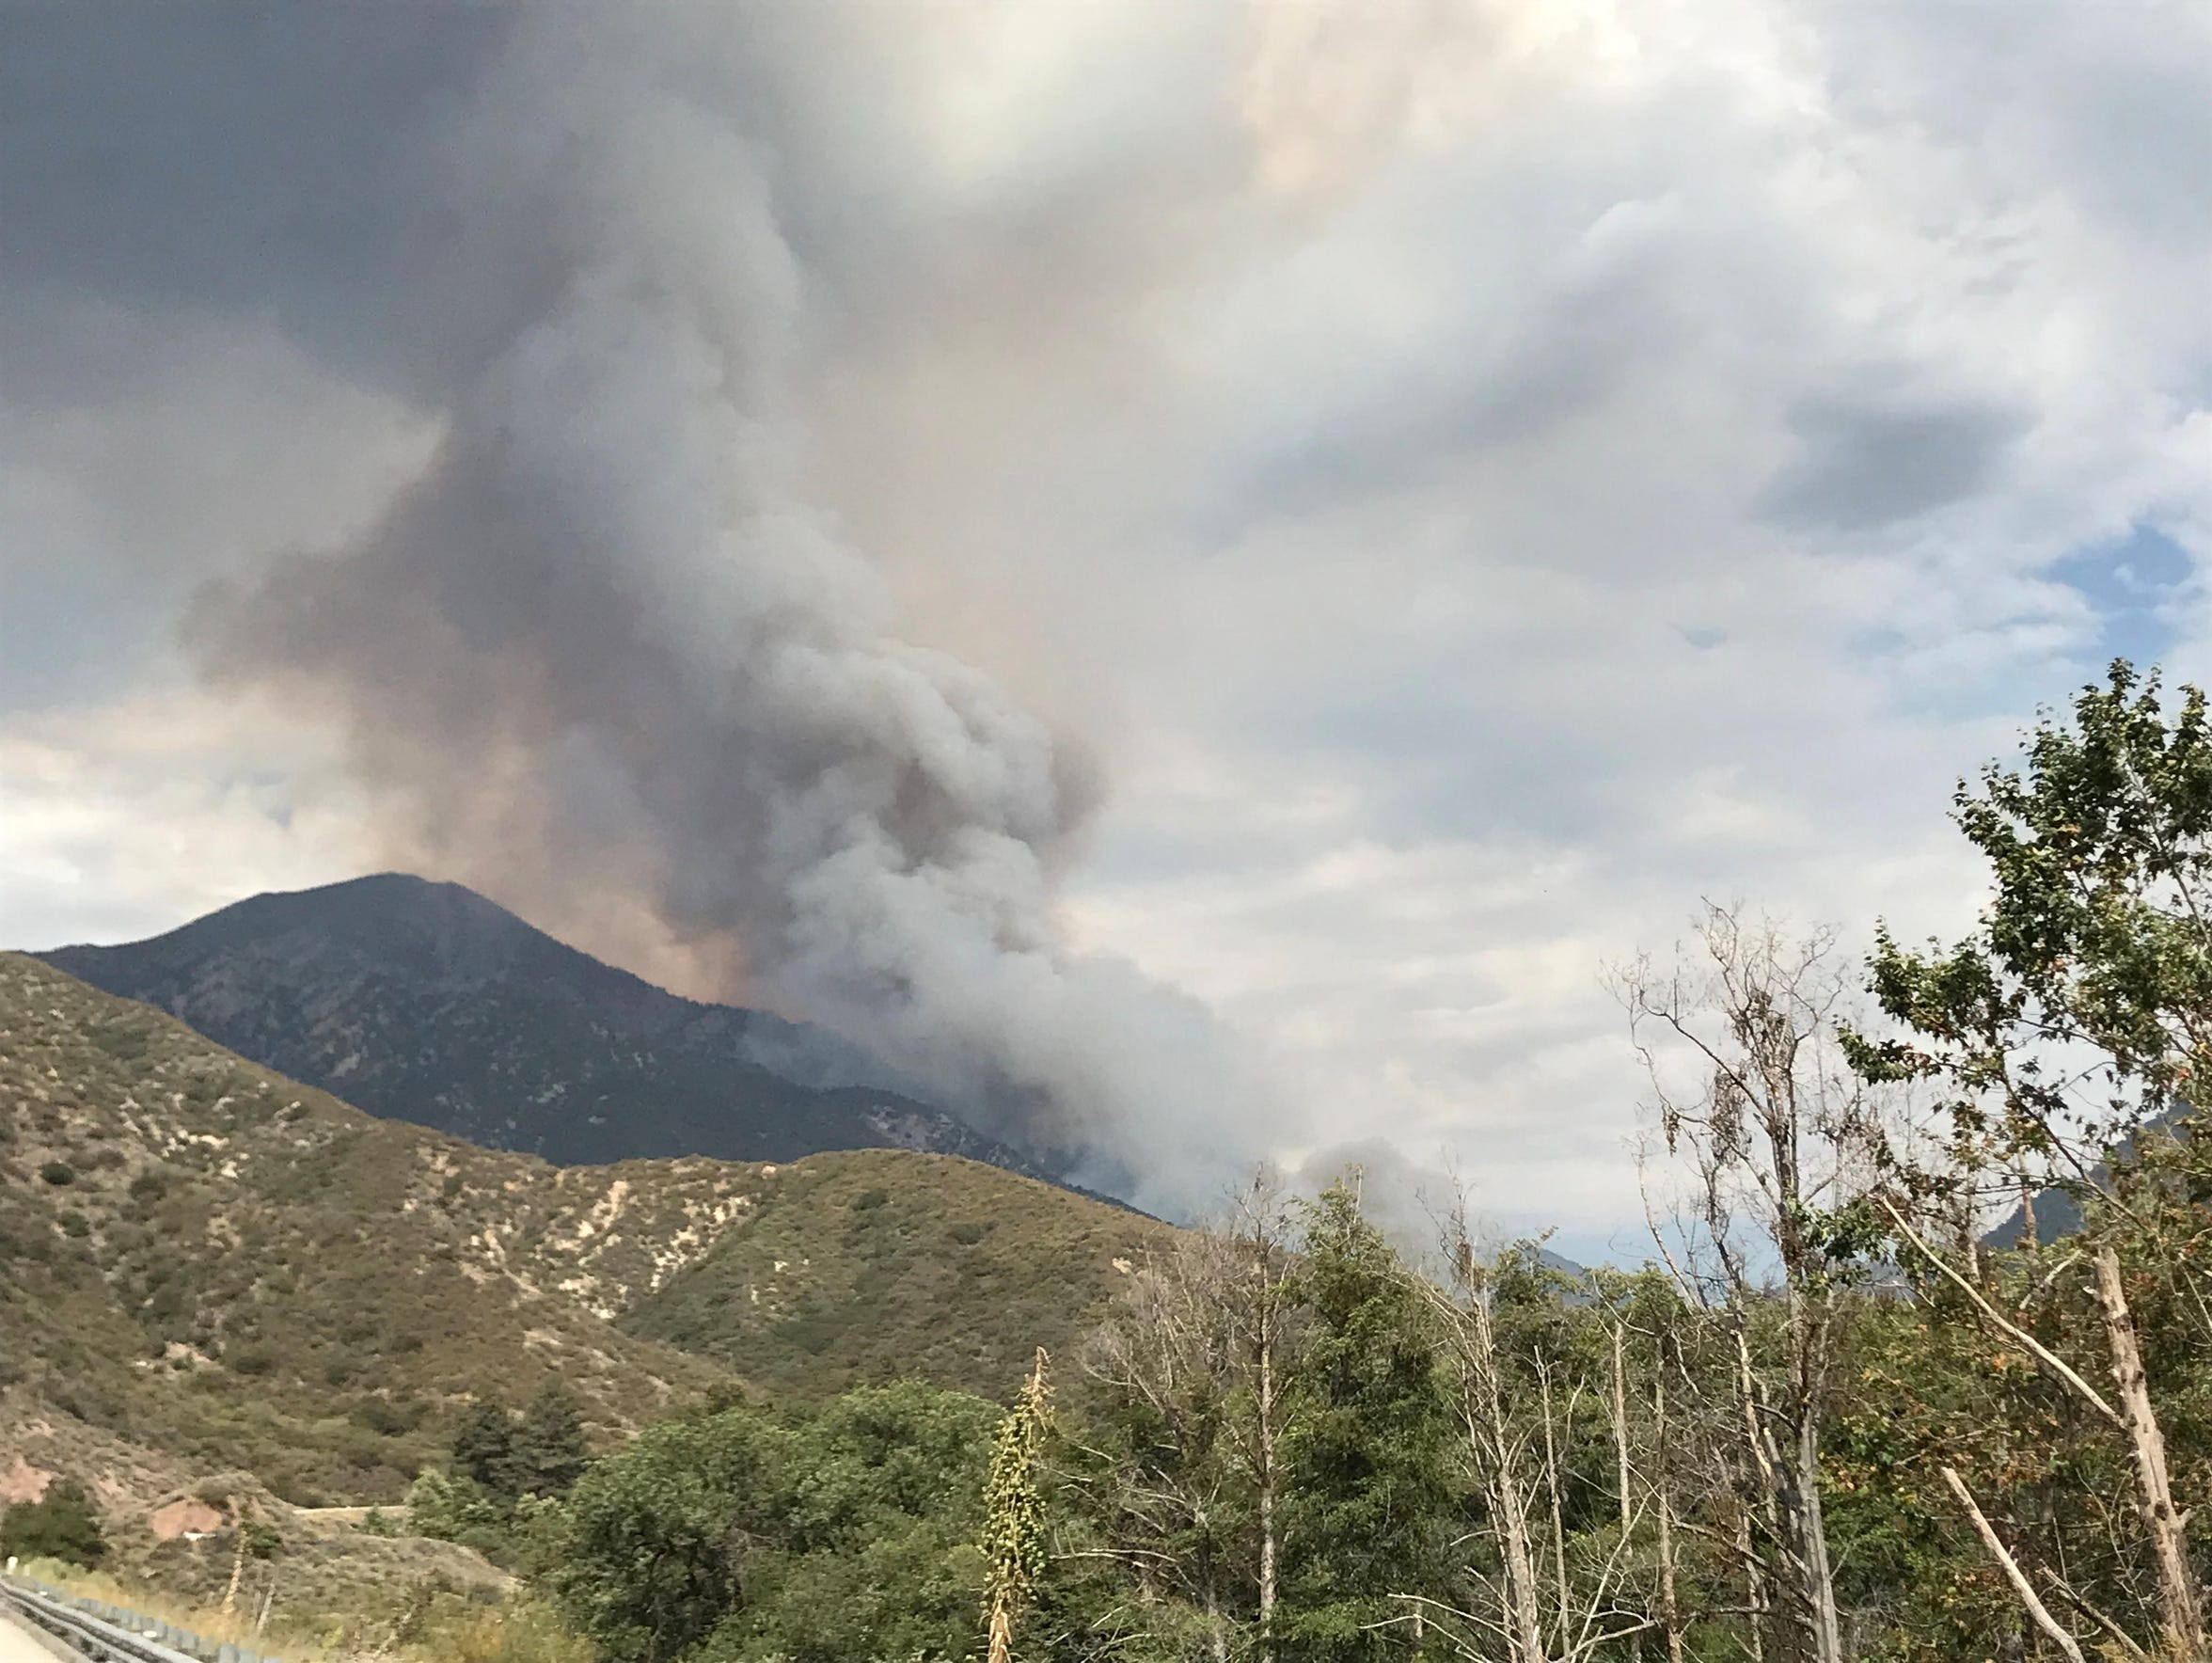 The Valley fire in the San Bernardino National Forest near Forest Falls began on July 6 and took more than three months to fully contain.